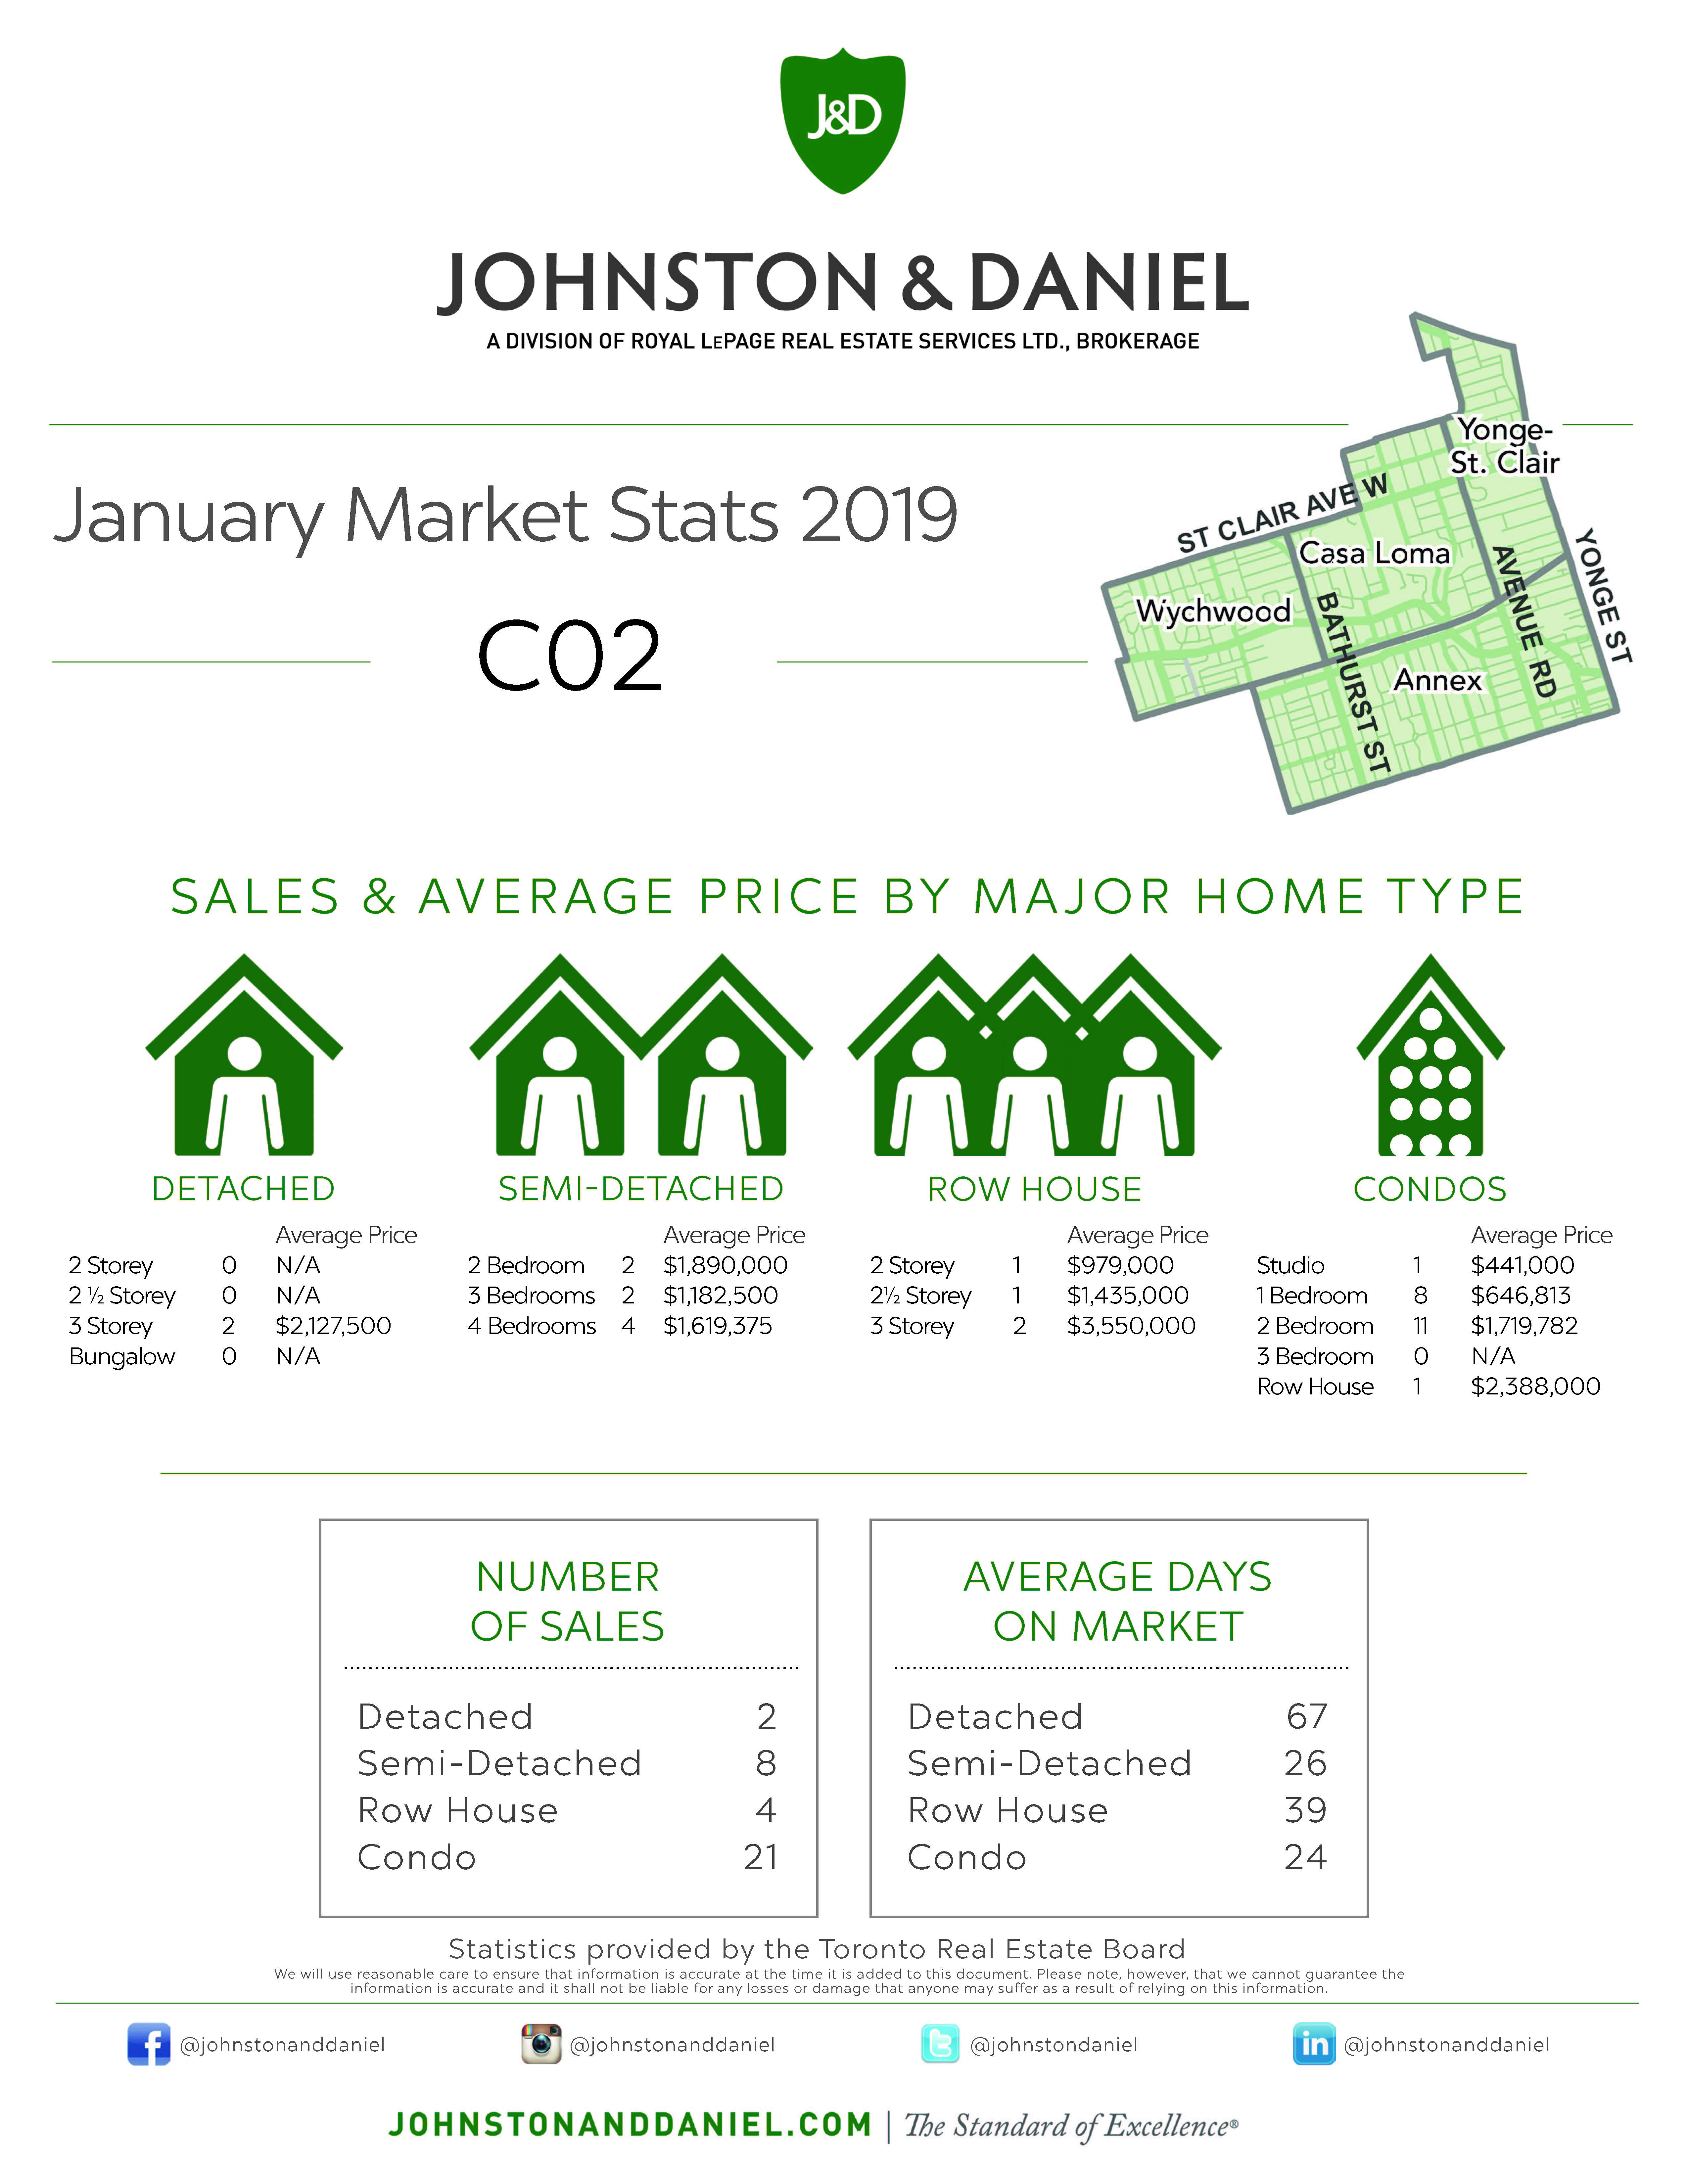 Toronto Real Estate Sales Statistics January 2019 for Area C02